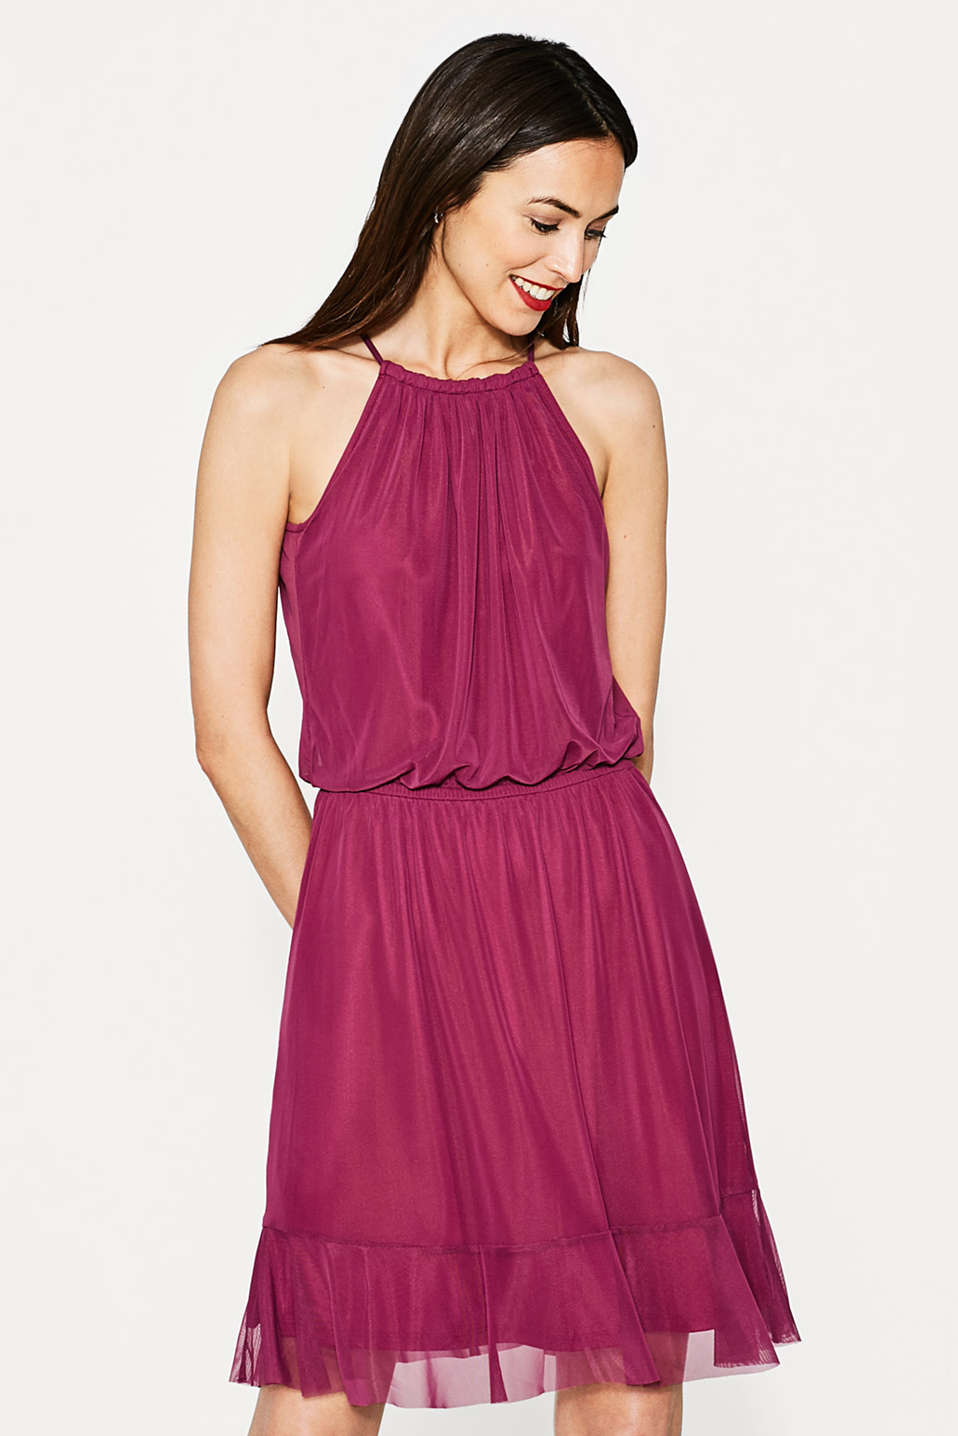 Esprit - Feminine mesh dress with hem flounce